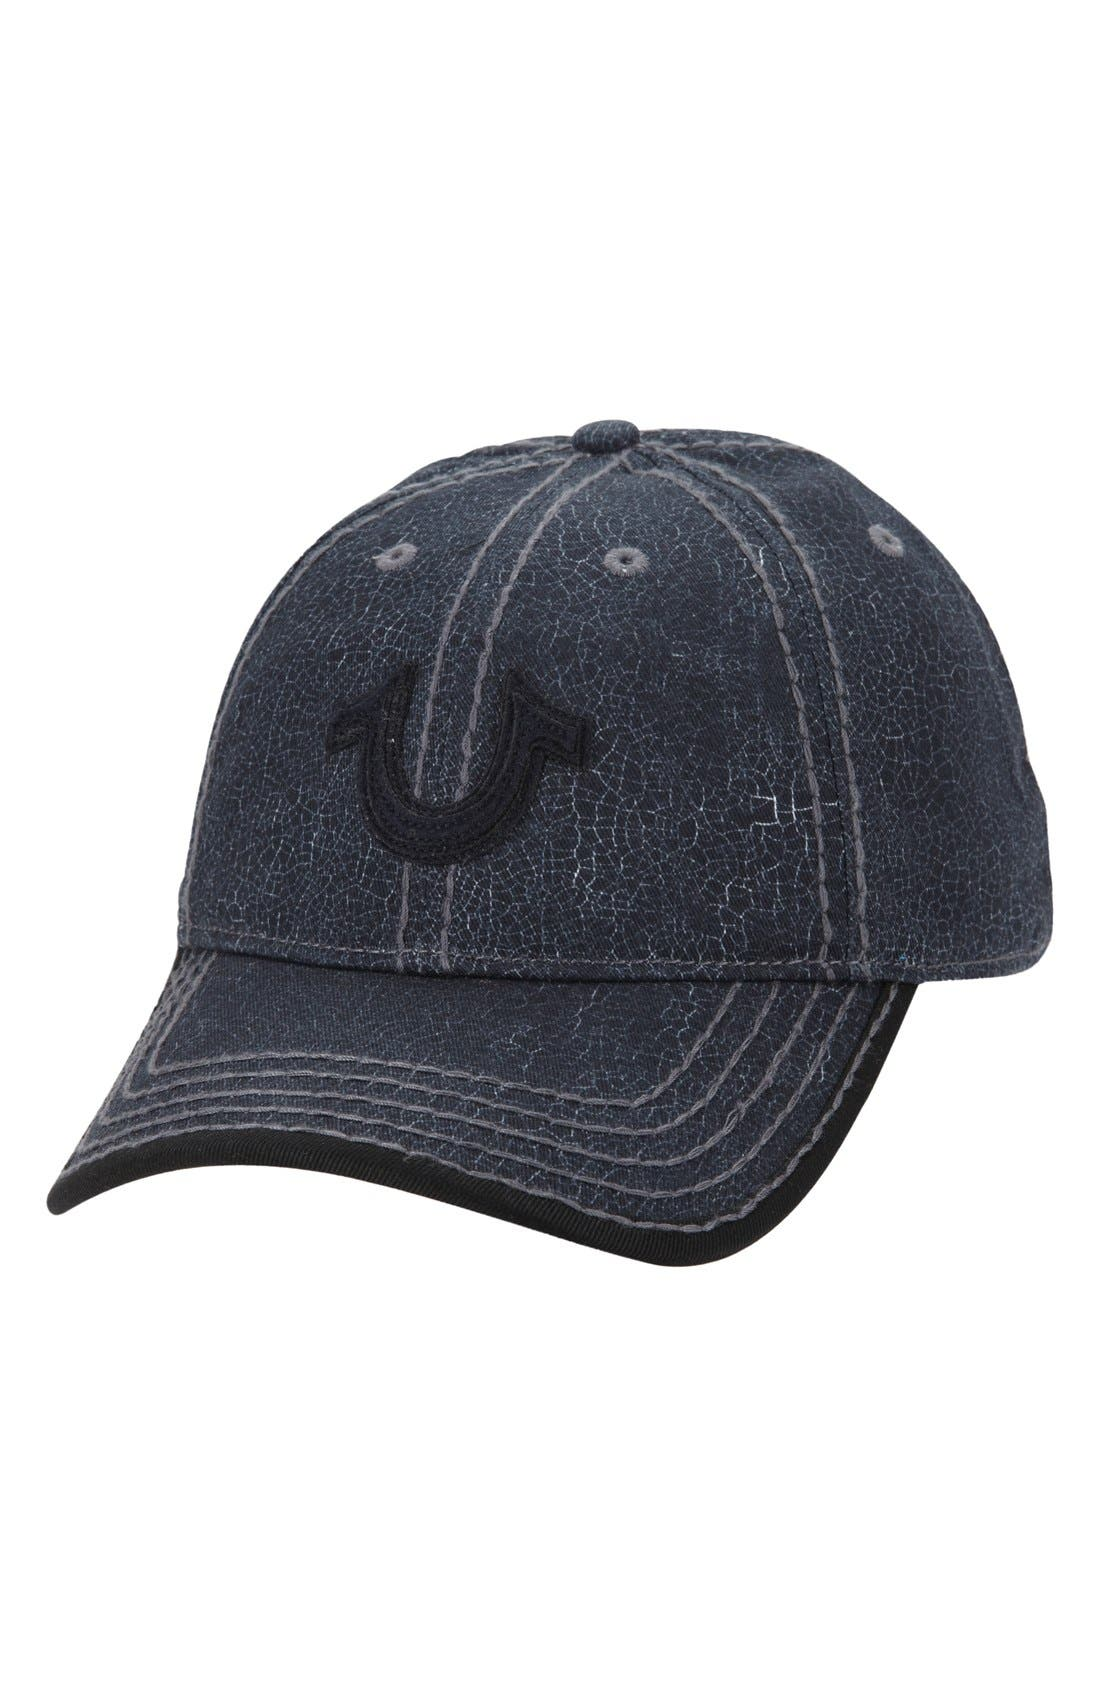 Crackle Print Baseball Cap,                             Main thumbnail 1, color,                             001